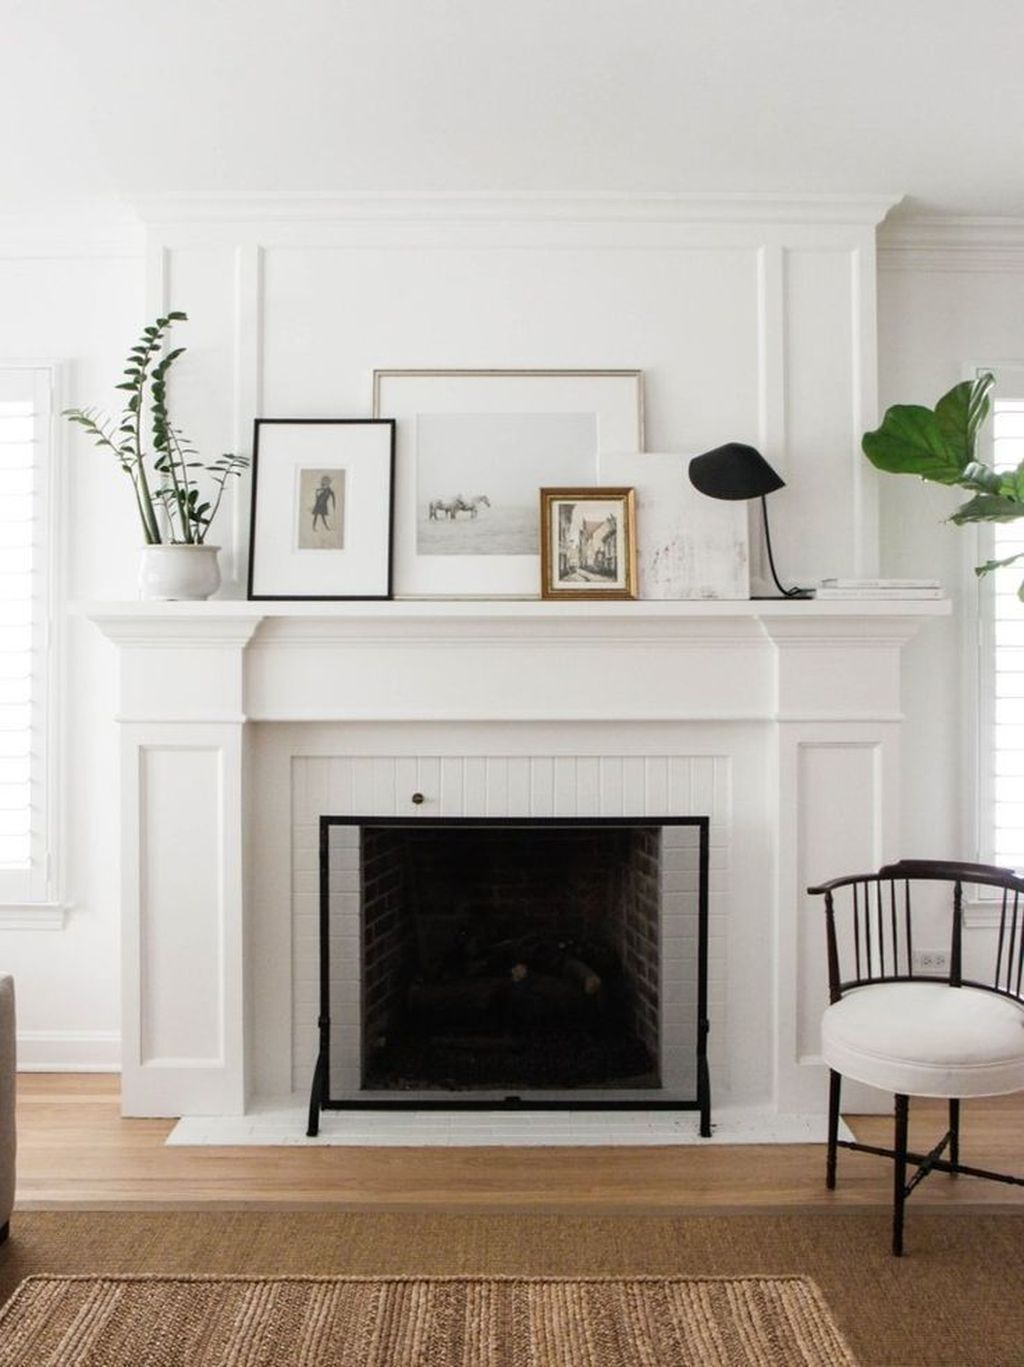 Stunning Fireplace Mantel Decor Ideas You Should Copy Now 21